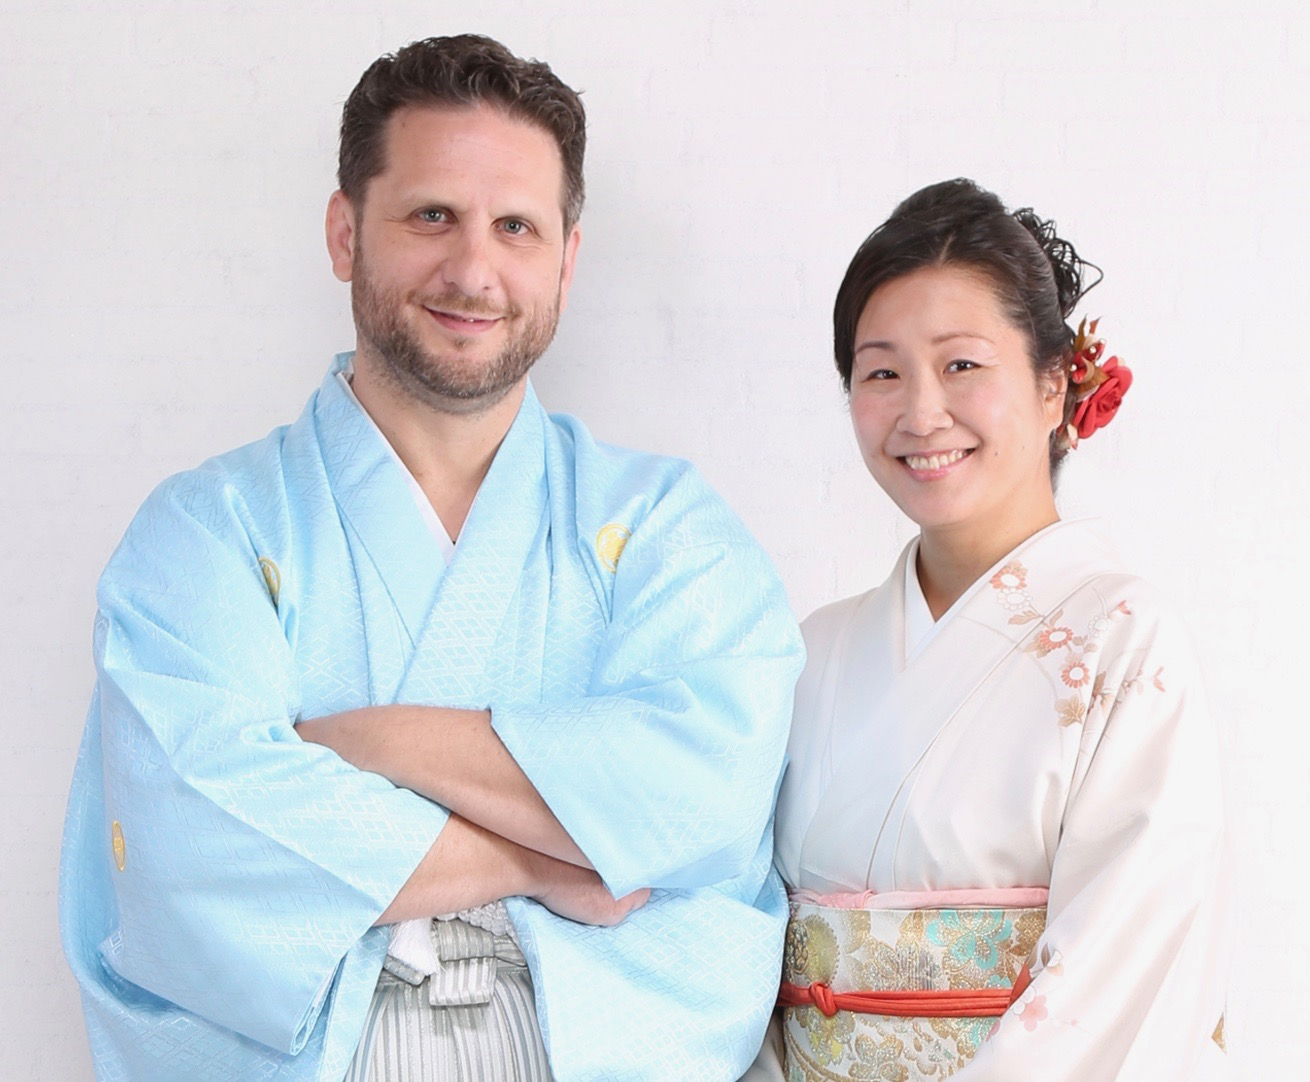 JC Sanford and Asuka Kakitani